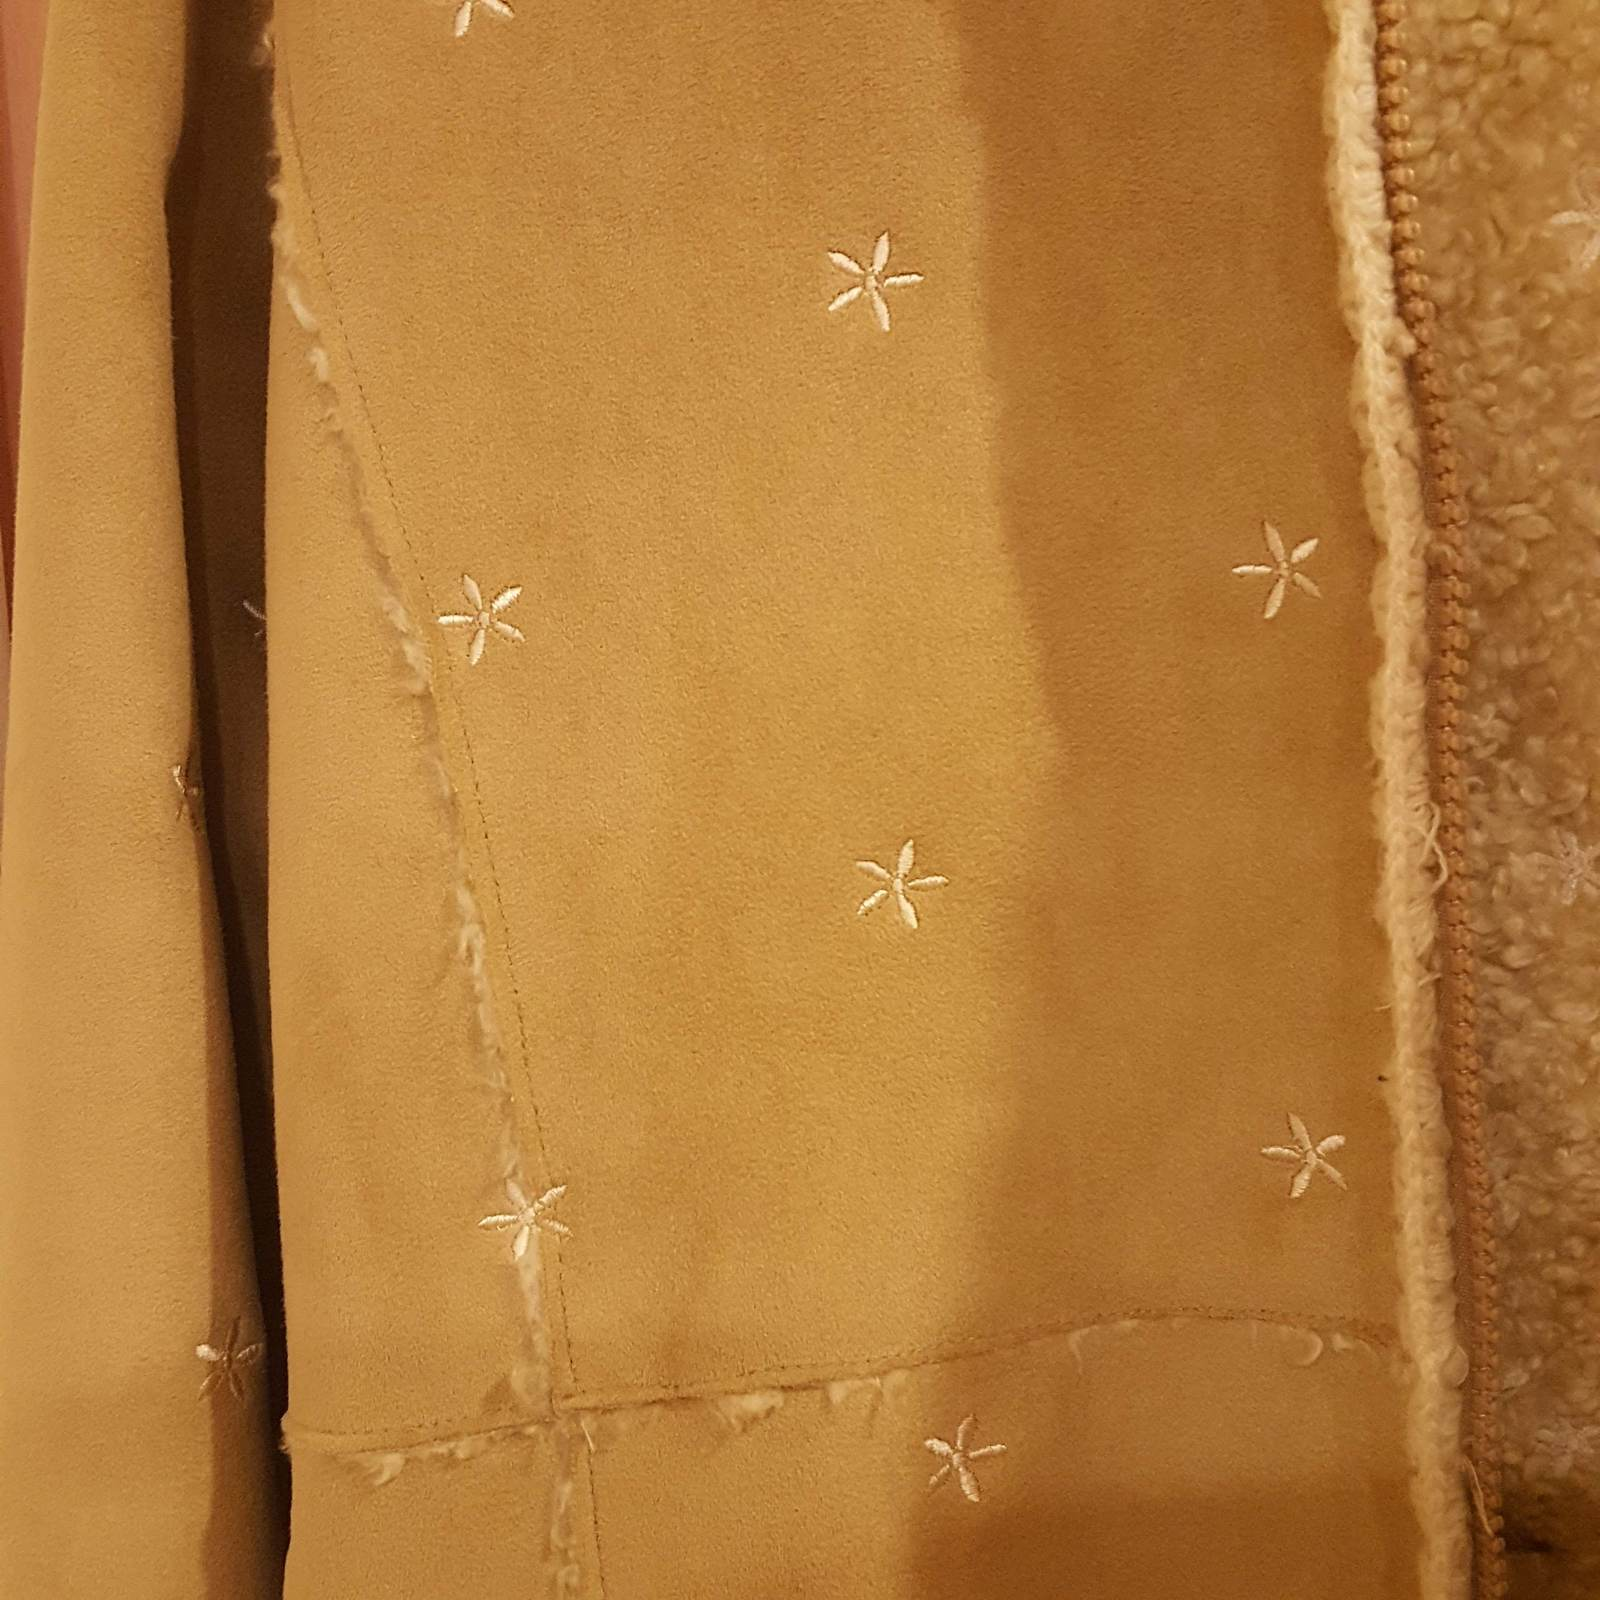 GAP GIRLS FAUX SUEDE BEIGE COAT XXL 14-16 with embroidery image 10